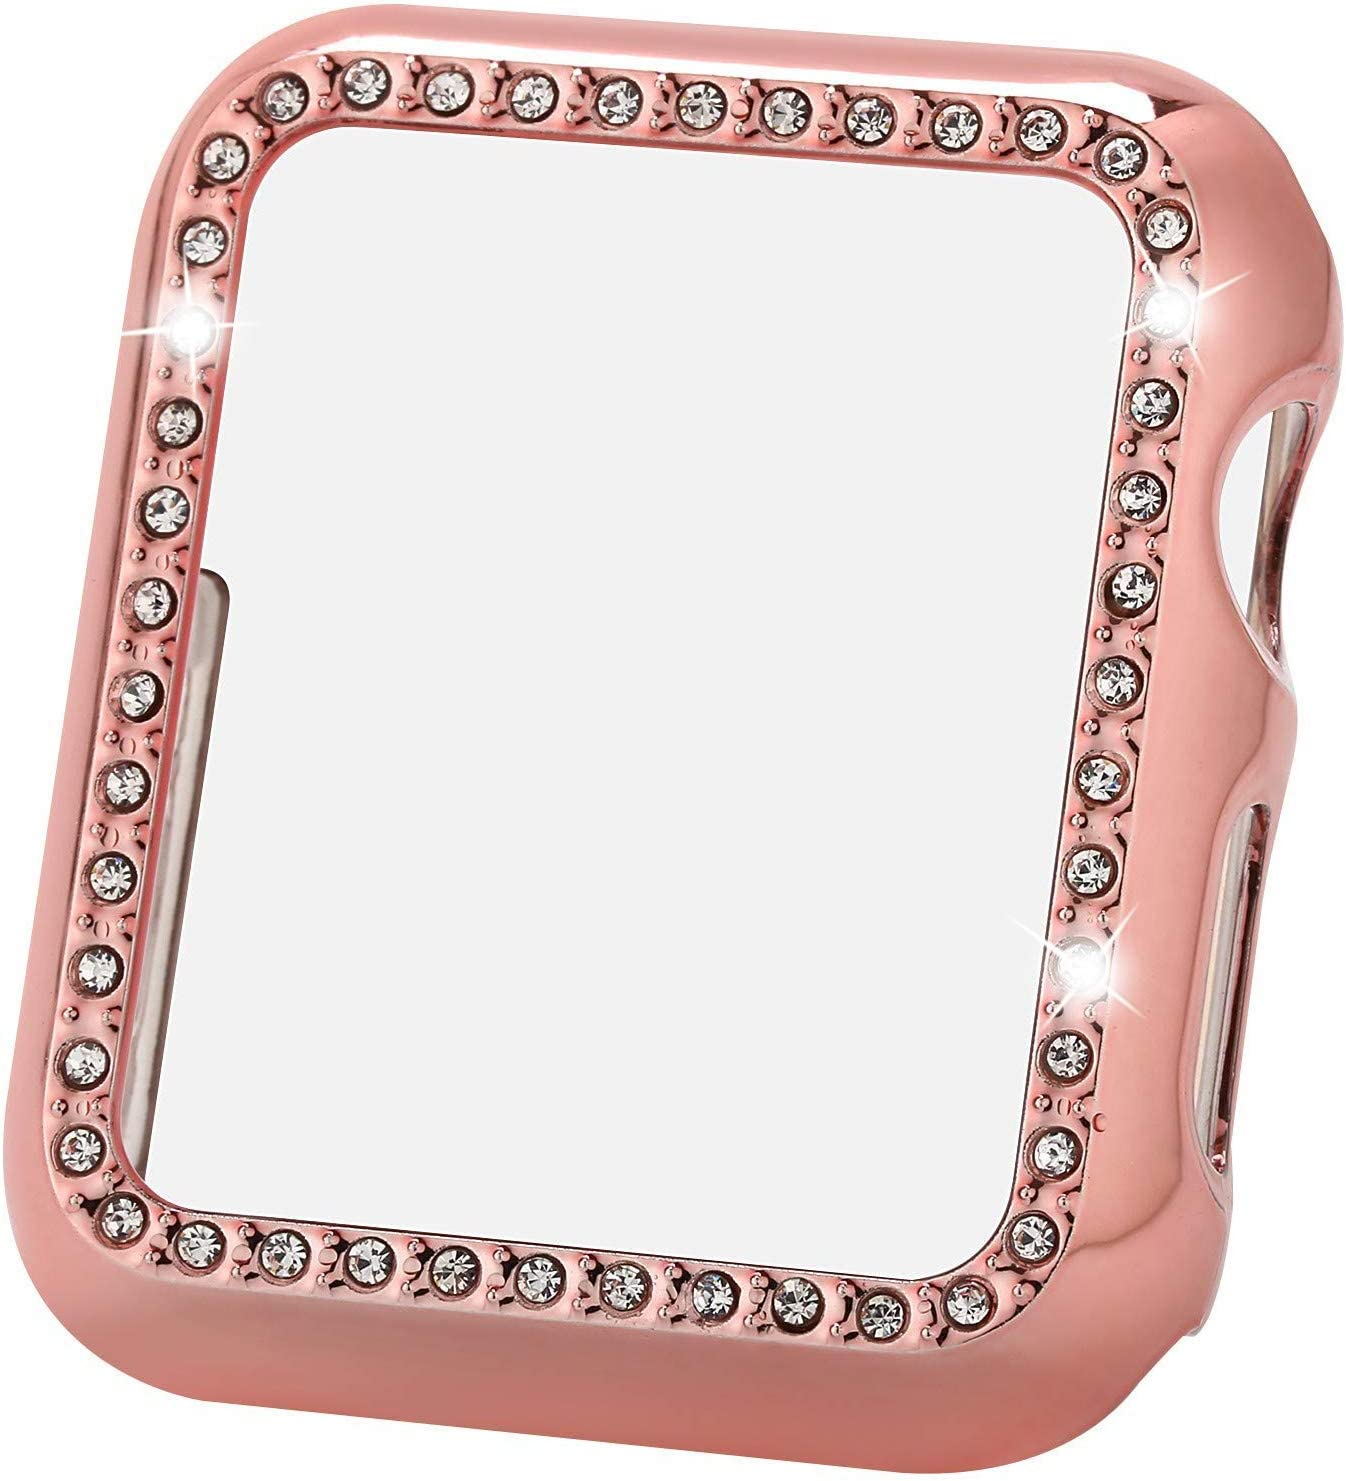 Greaciary Bling Case Compatible for Apple Watch 38mm,Sparkle Crystal Diamonds Shiny Rhinestone Bumper,Electroplated PC Hard Protective Frame for Apple Watch 3/2/1 Women(Rhinestone-Rose Pink